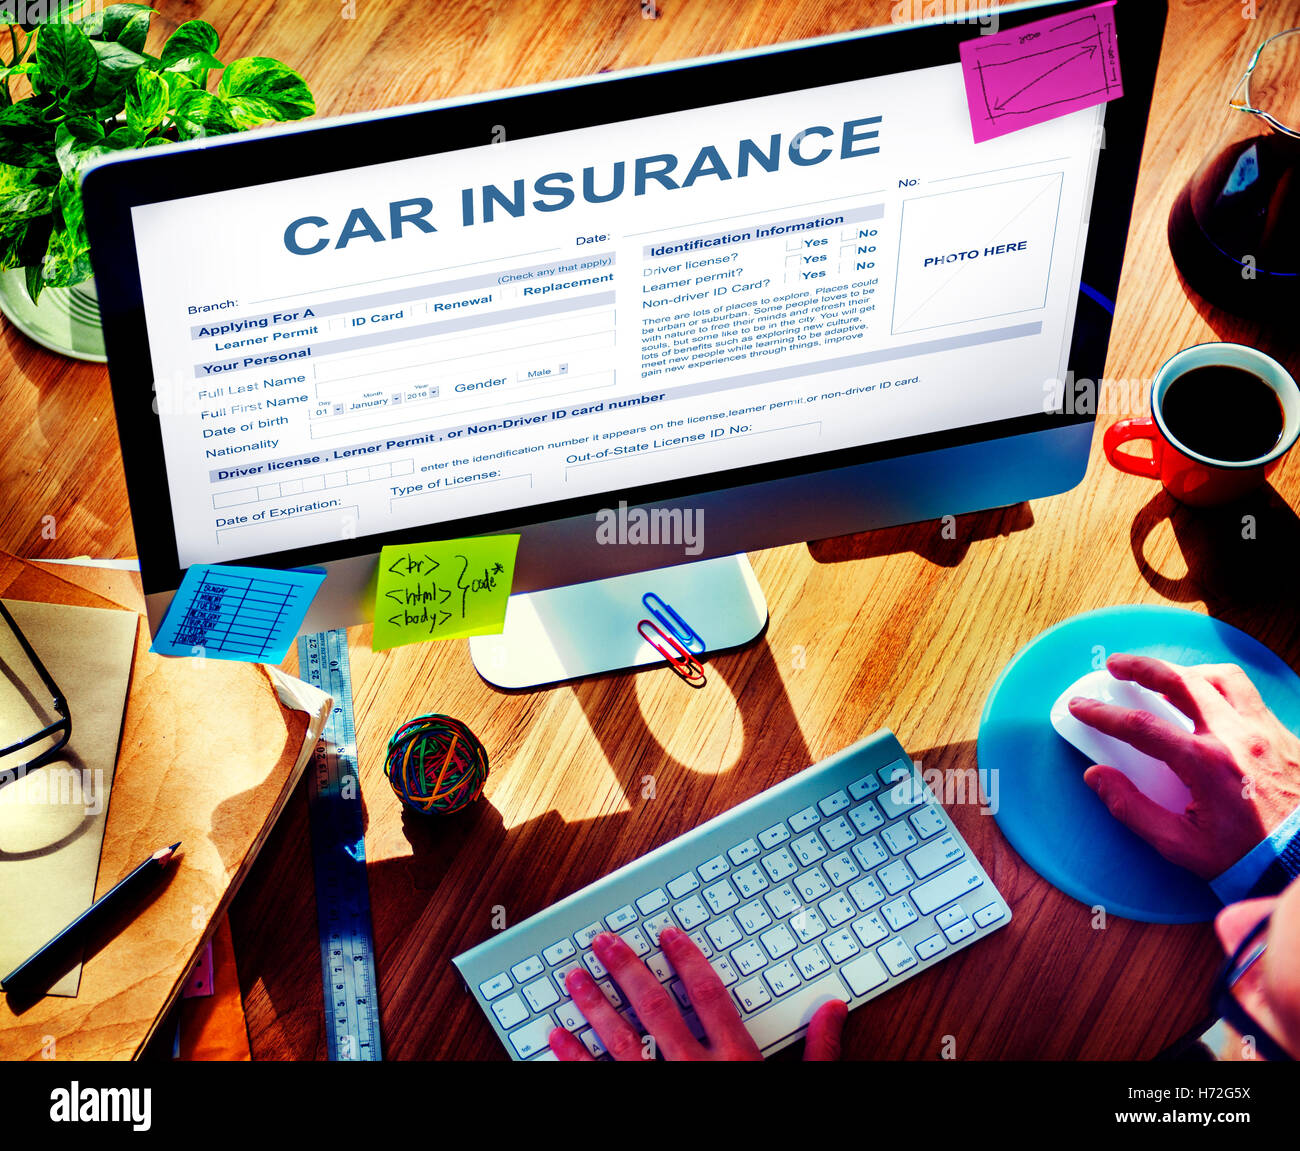 Car Insurance Form Accidental Concept Stock Photo, Royalty Free ...